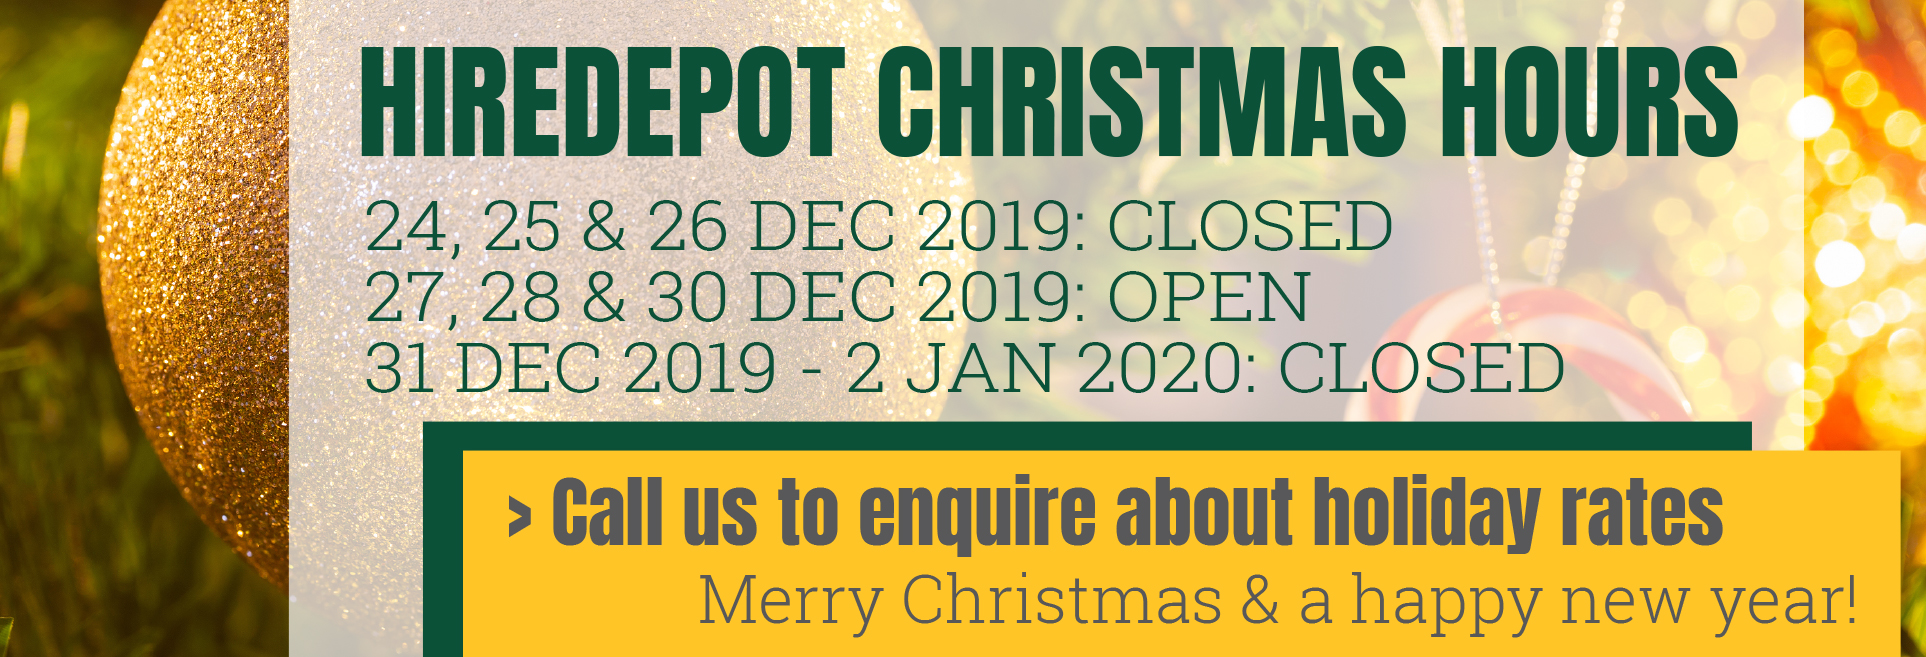 Hiredepot Christmas hours 2019